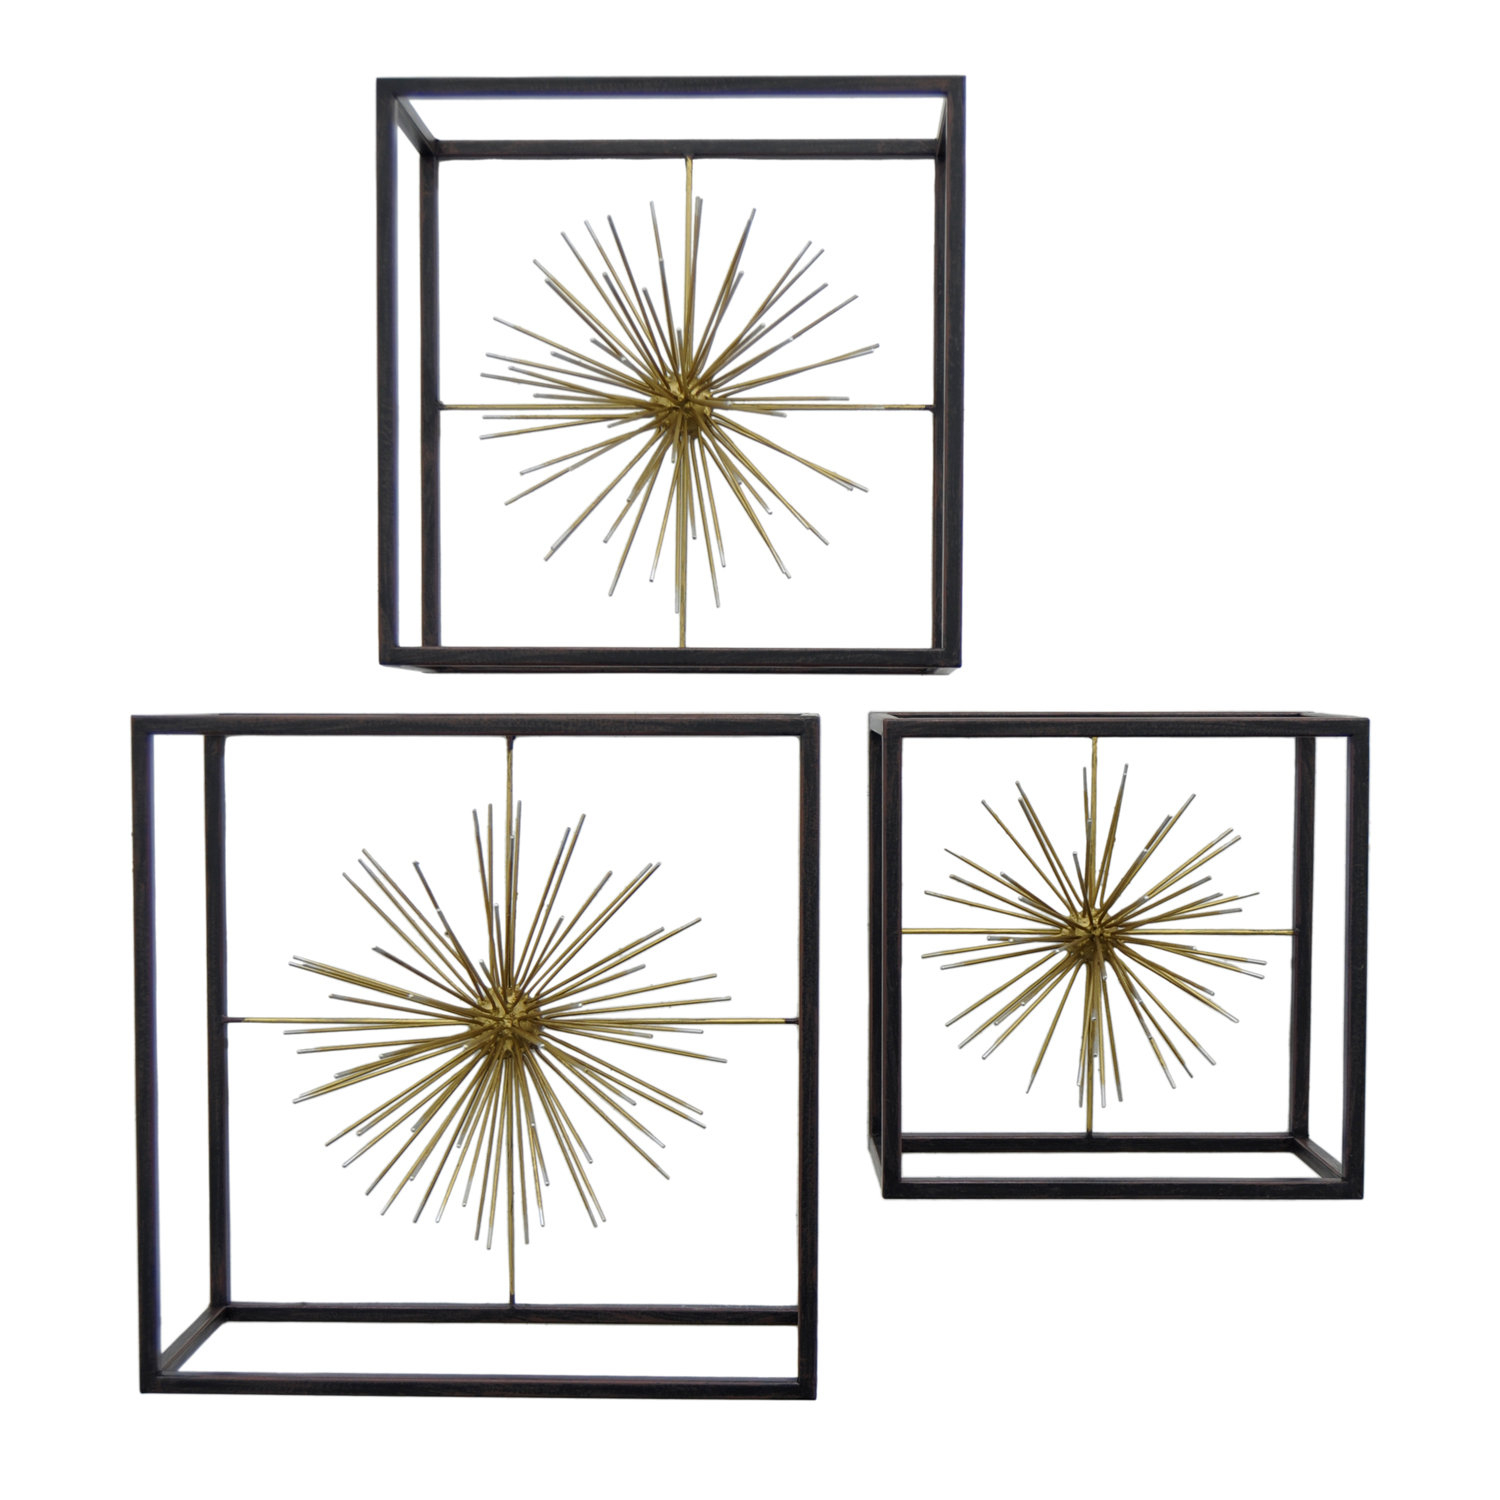 Burst Wall Decor Set | Wayfair With 3 Piece Acrylic Burst Wall Decor Sets (set Of 3) (View 10 of 30)